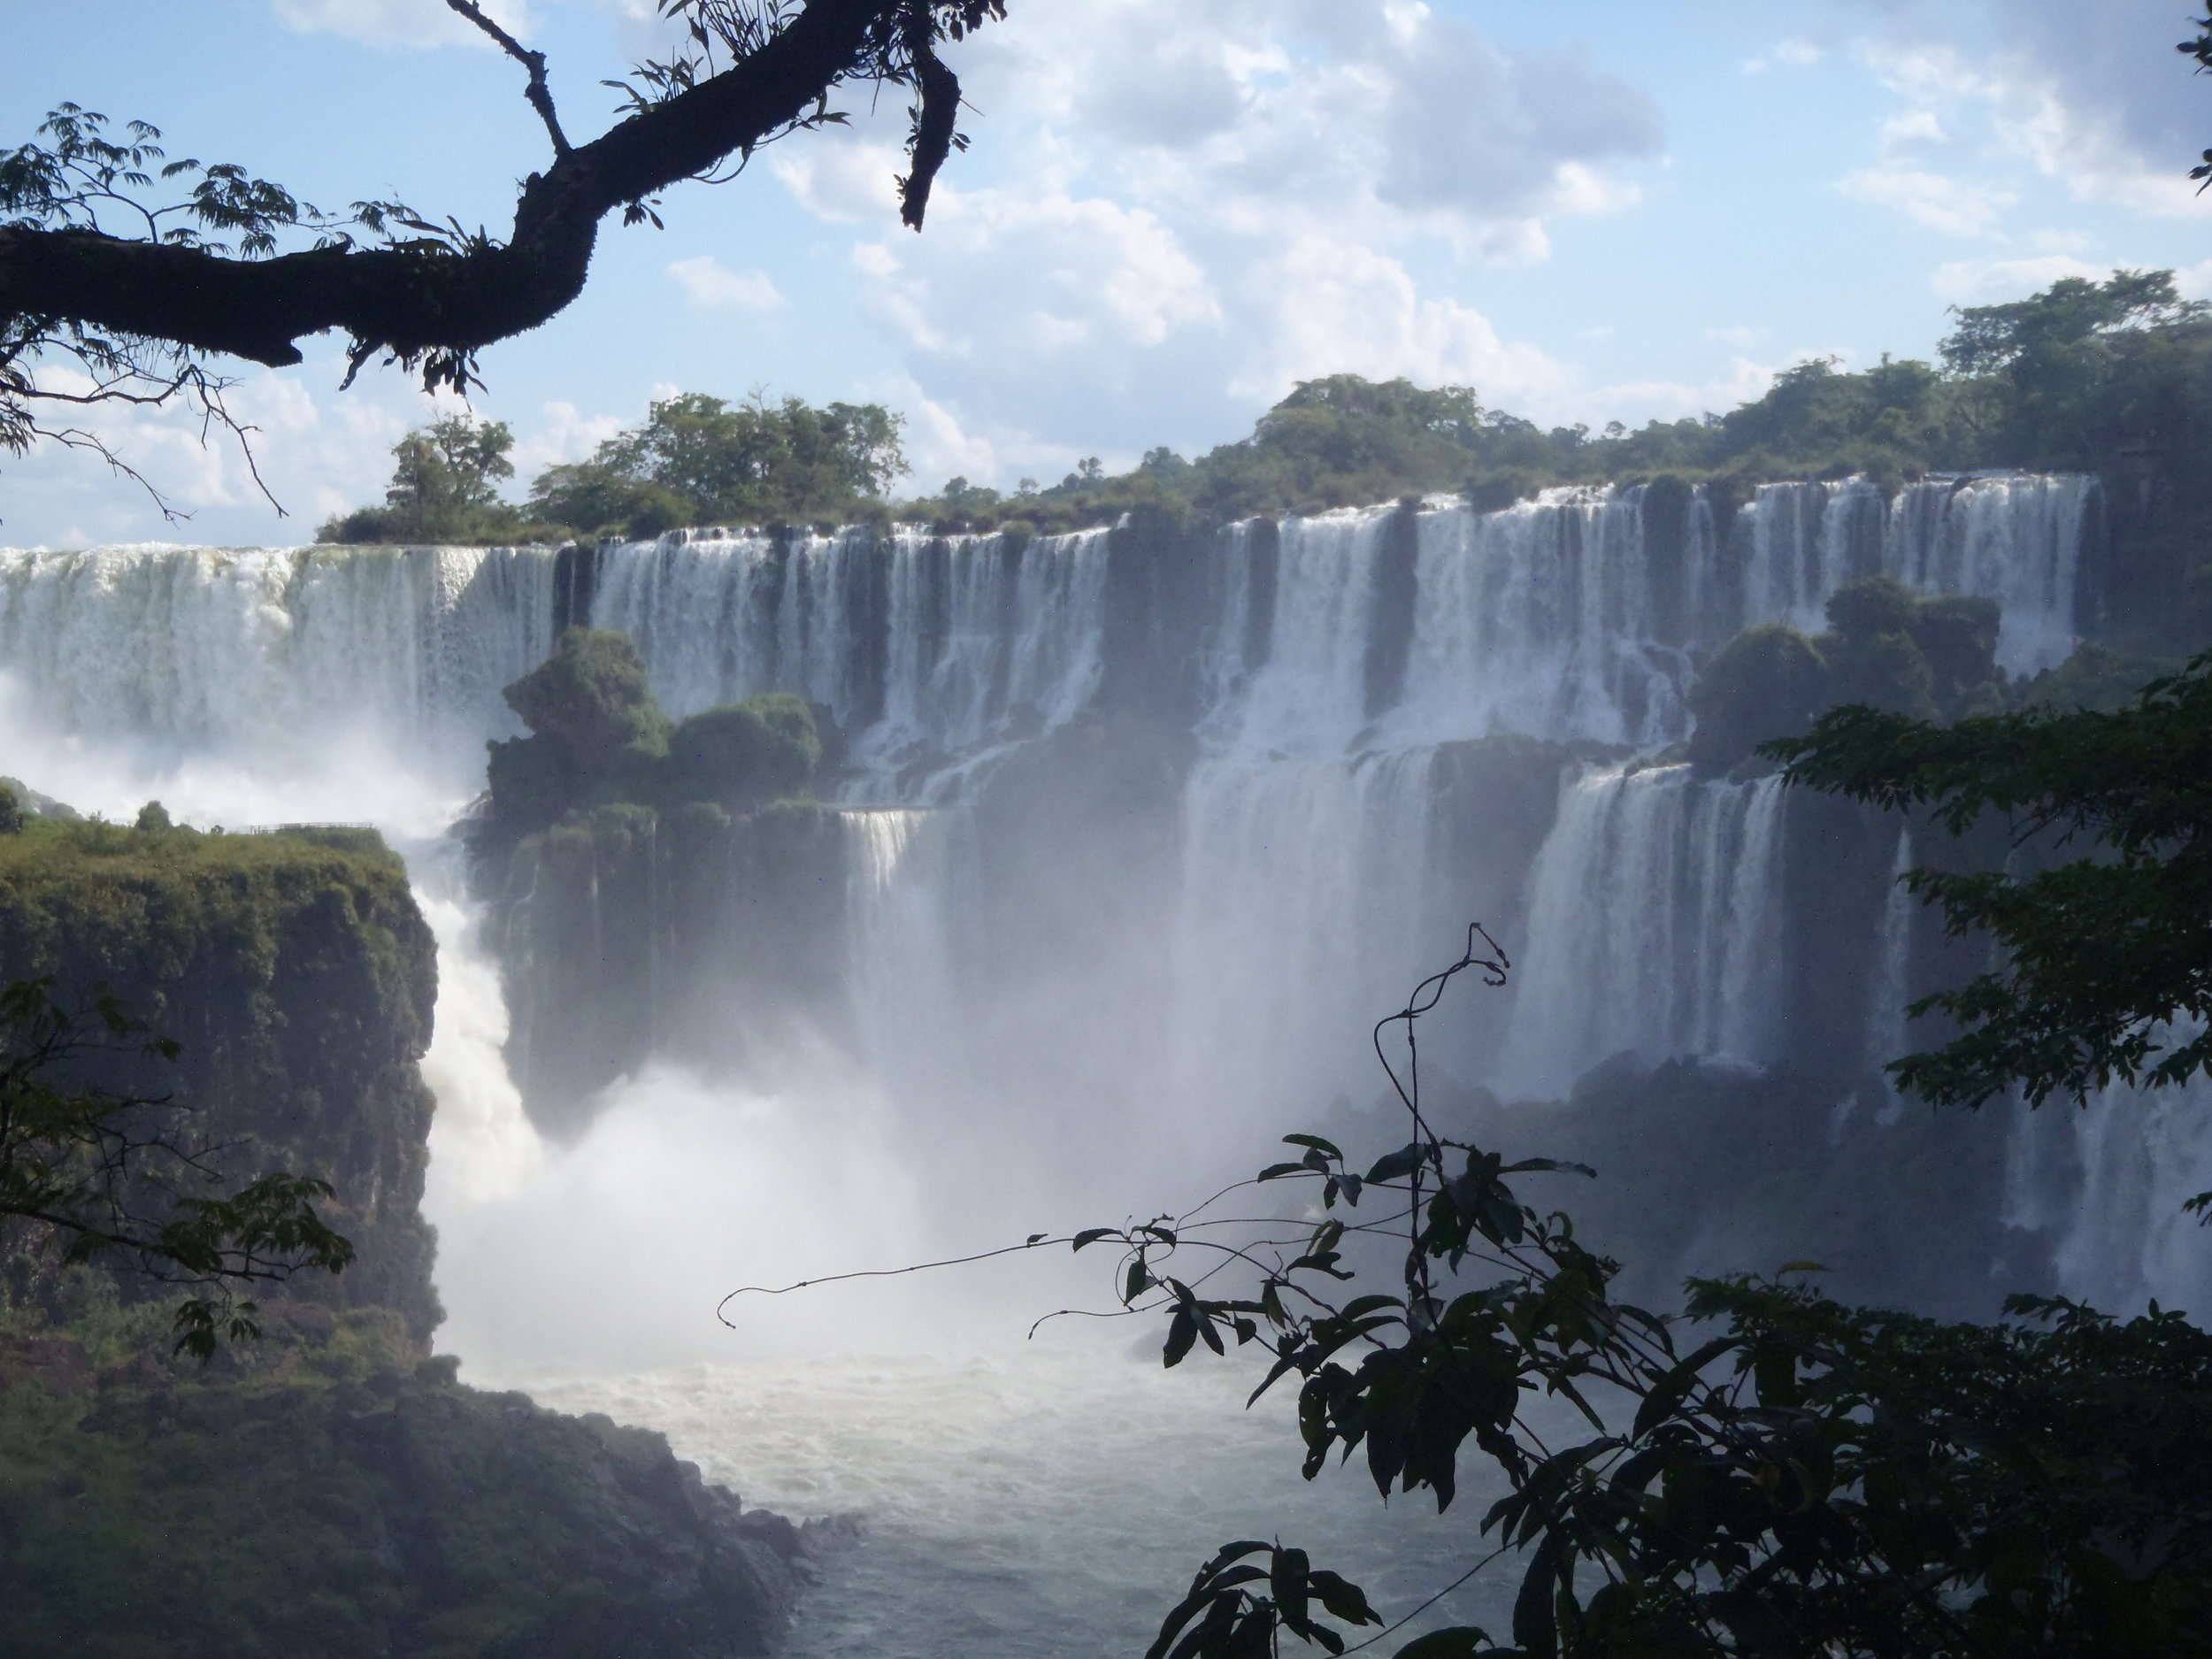 Iguazu Falls, Brazil/Argentina - Stand atop one of the world's most incredible waterfalls.